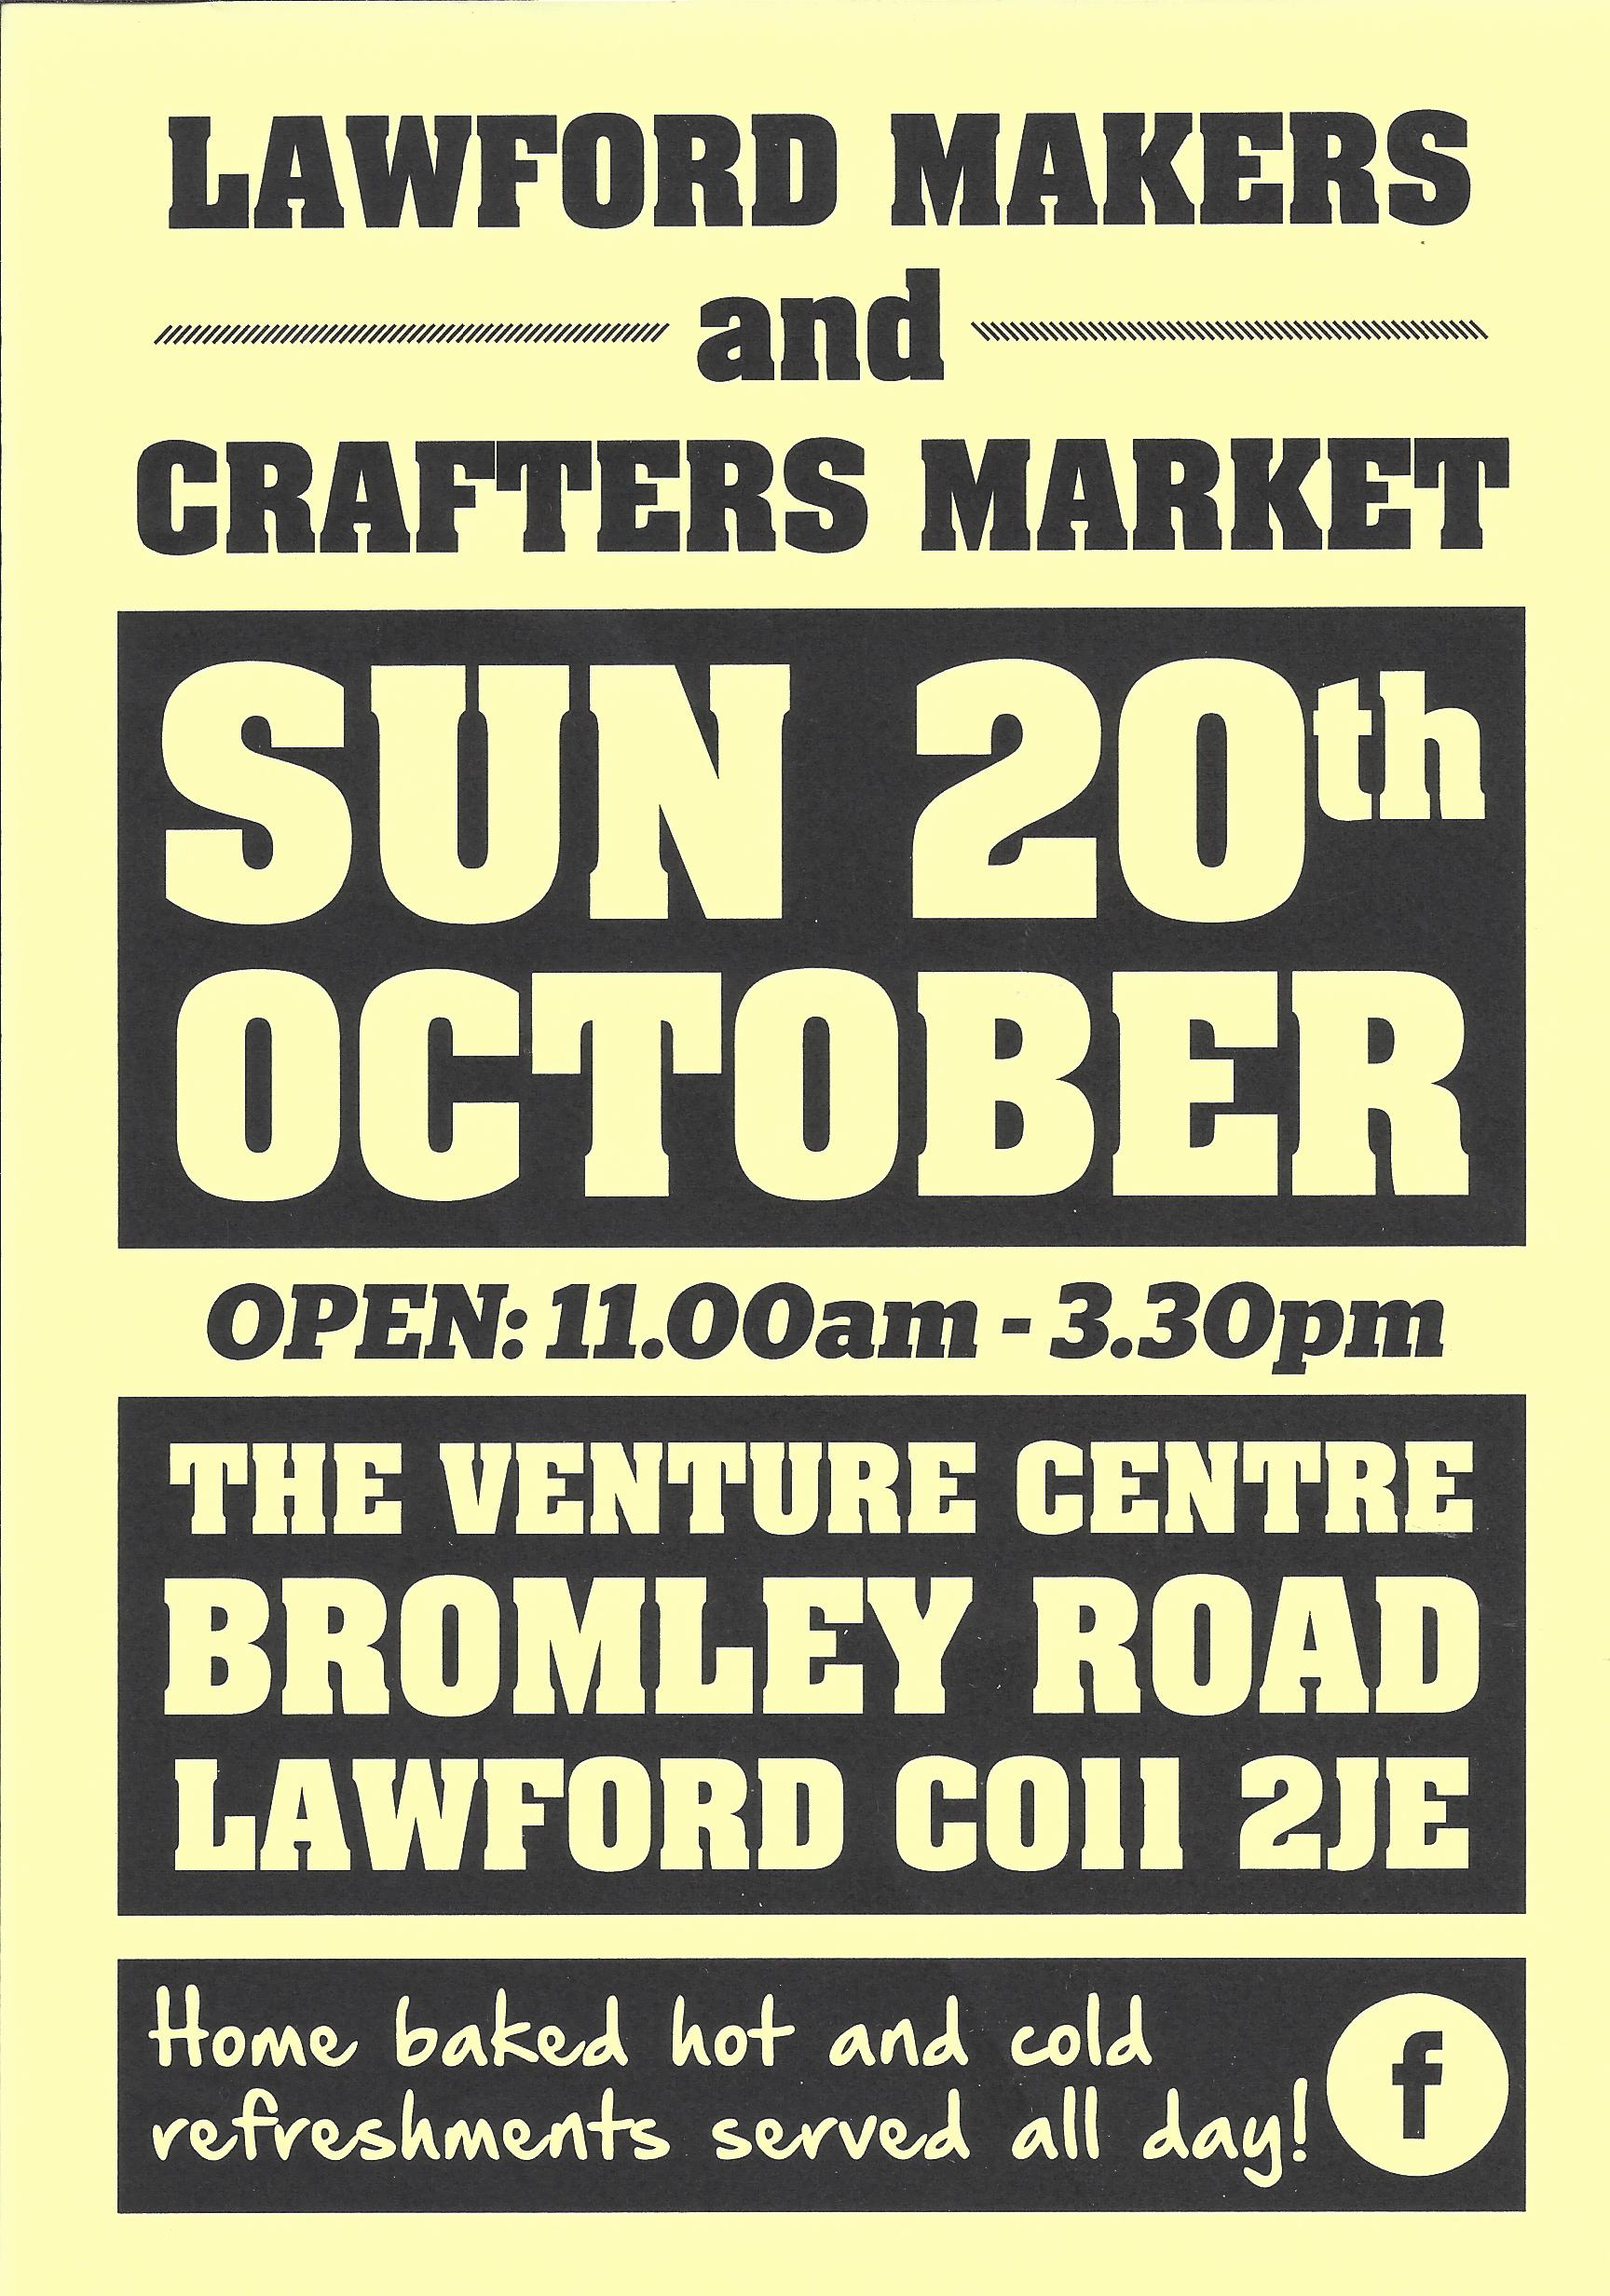 Lawford Makers & Crafters Market